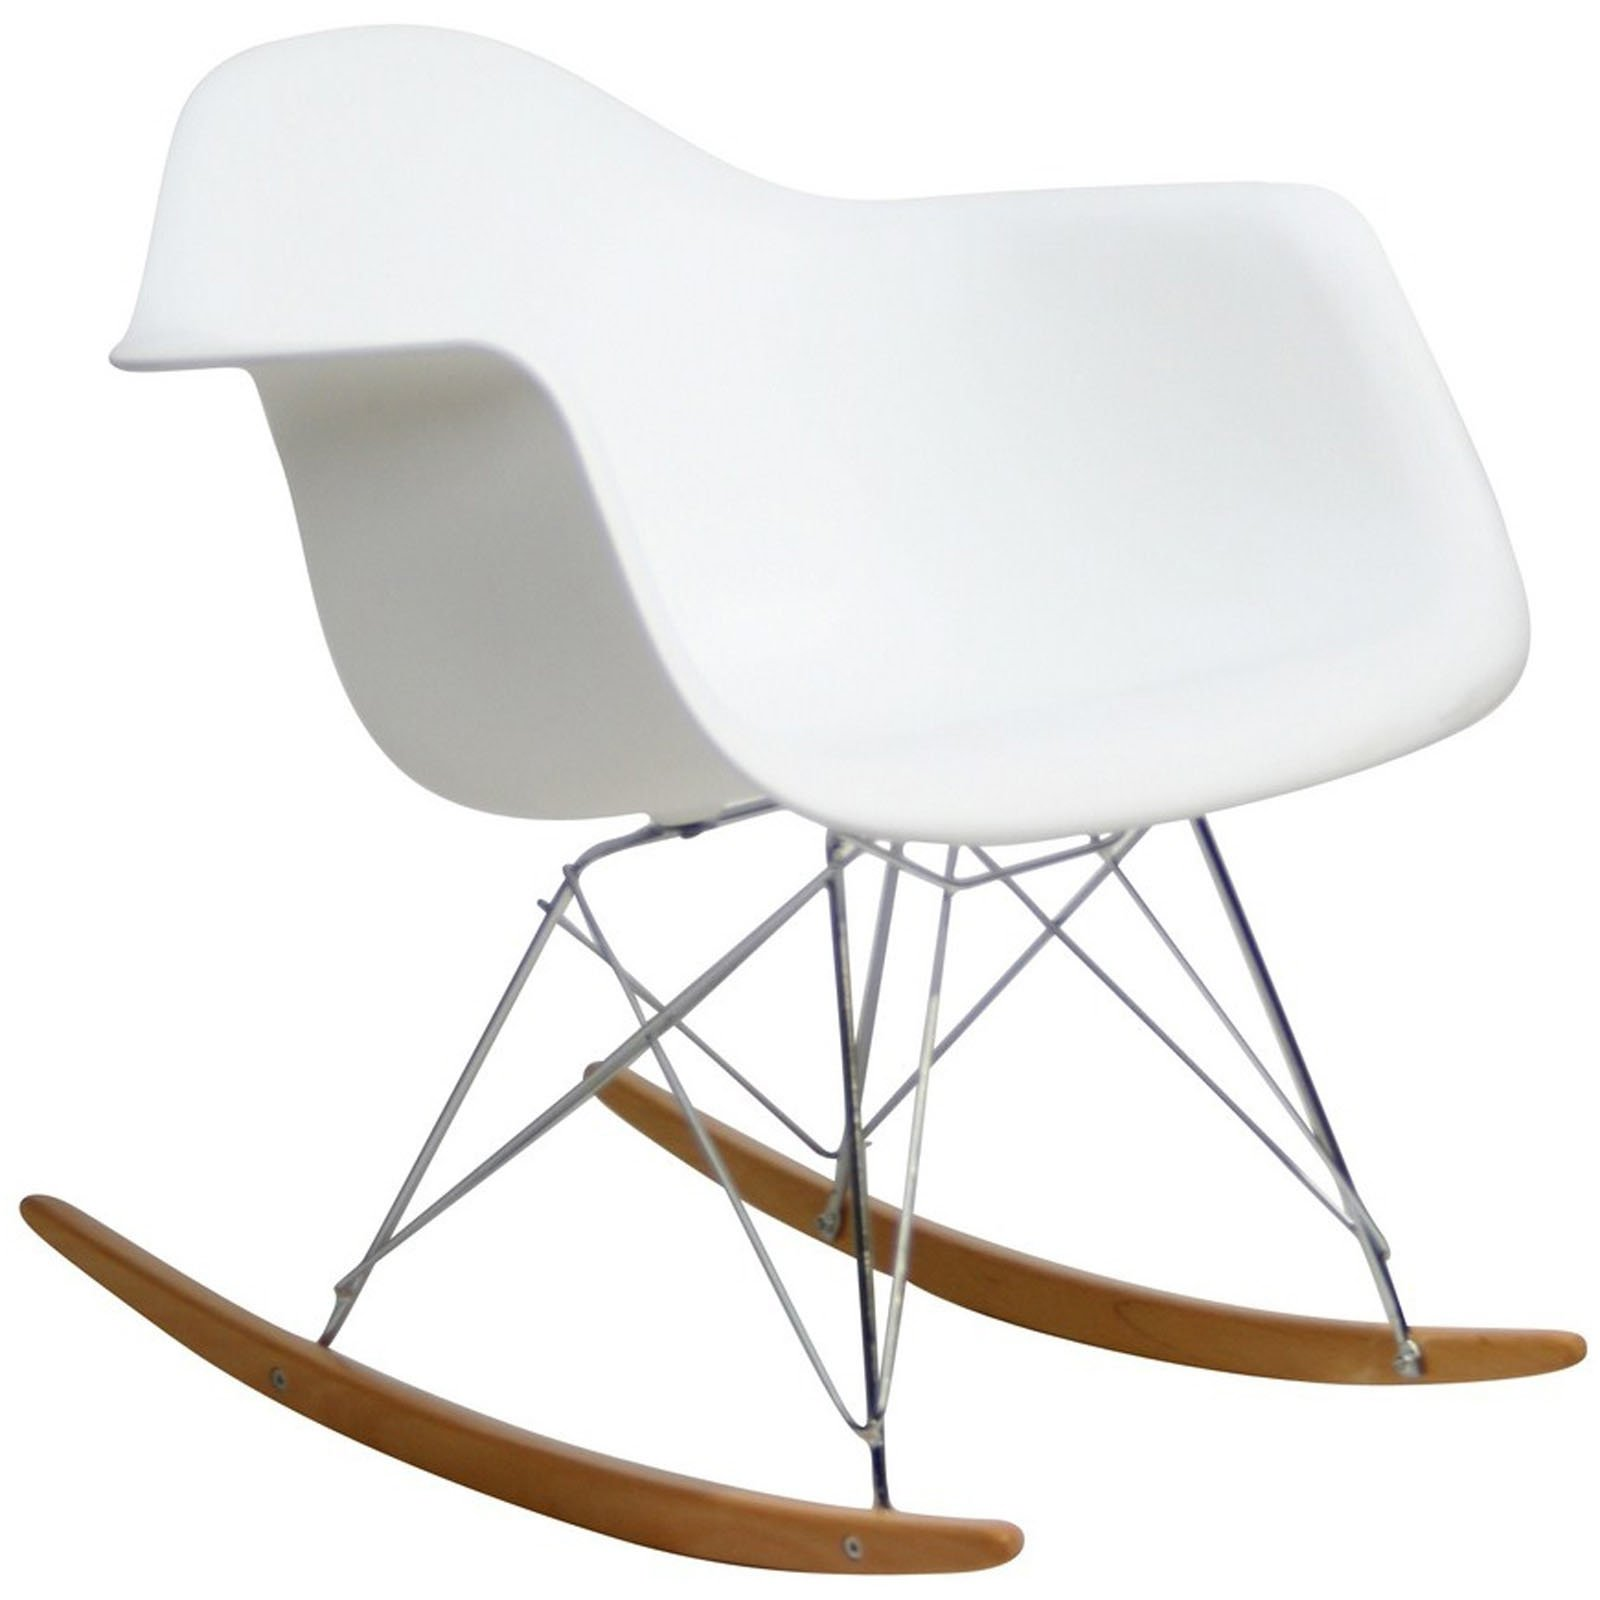 Modway EEI-147-WHI Rocker Molded Plastic Accent Lounge Chair Rocker White